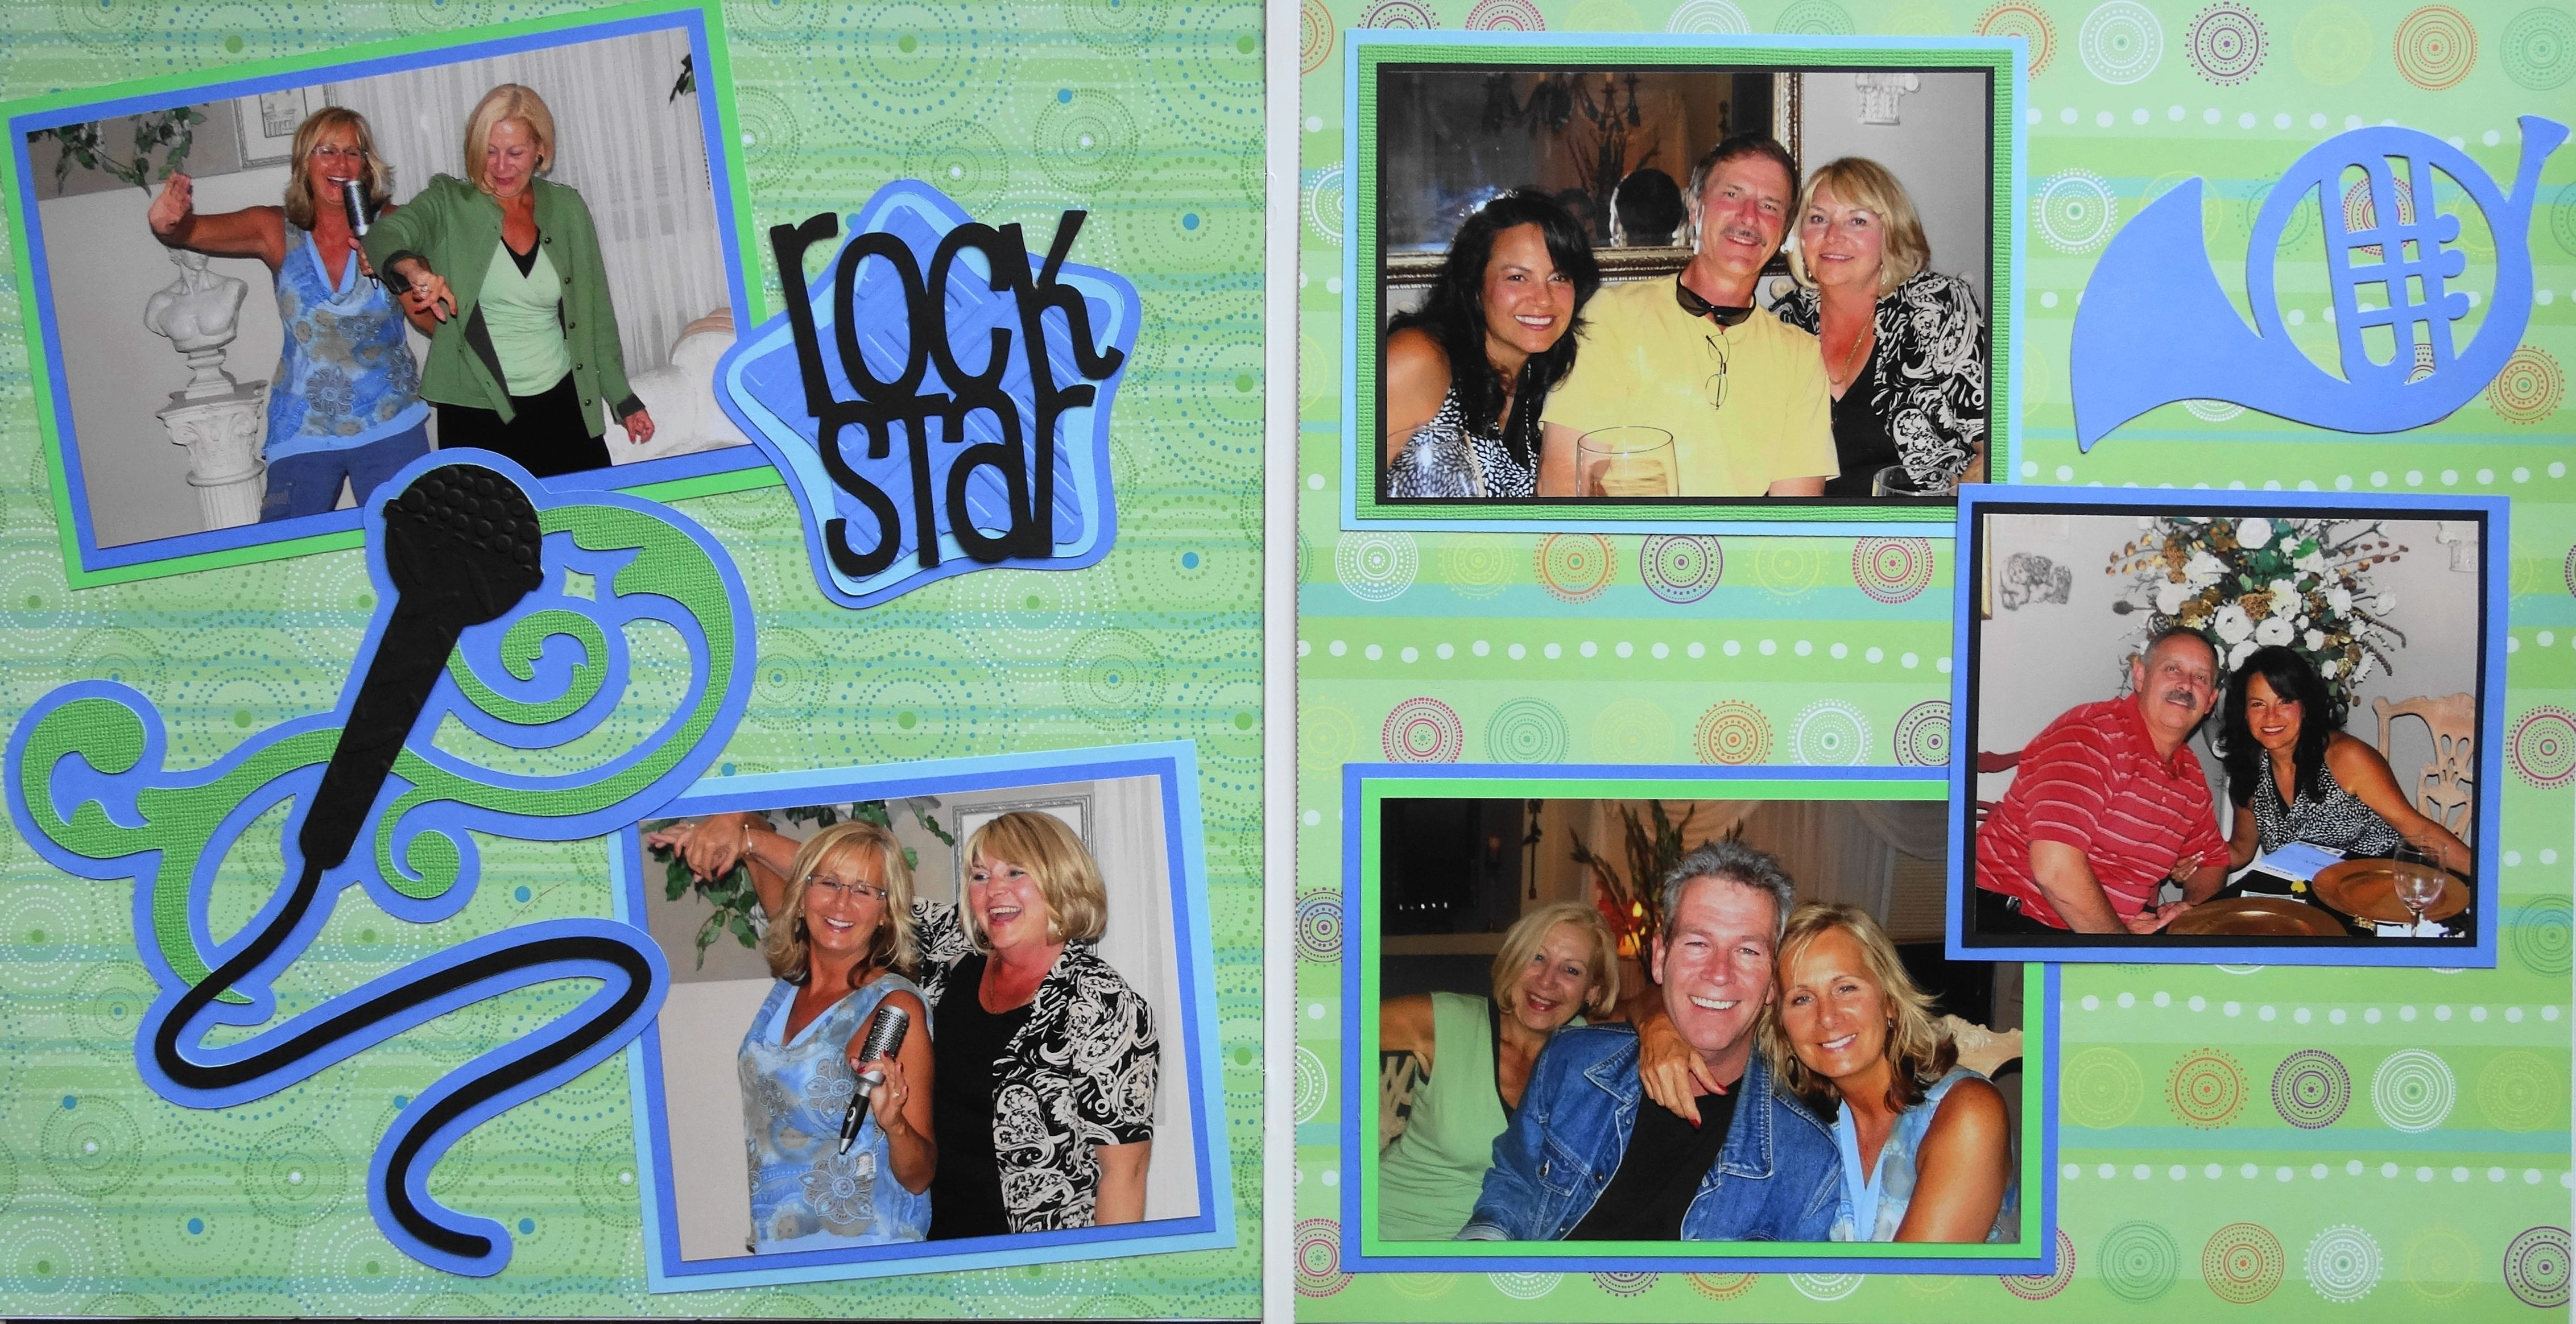 Family scrapbook ideas on pinterest - Scrapbook Page Karaoke Rock Stars 2 Page Music Layout With A Microphone And French